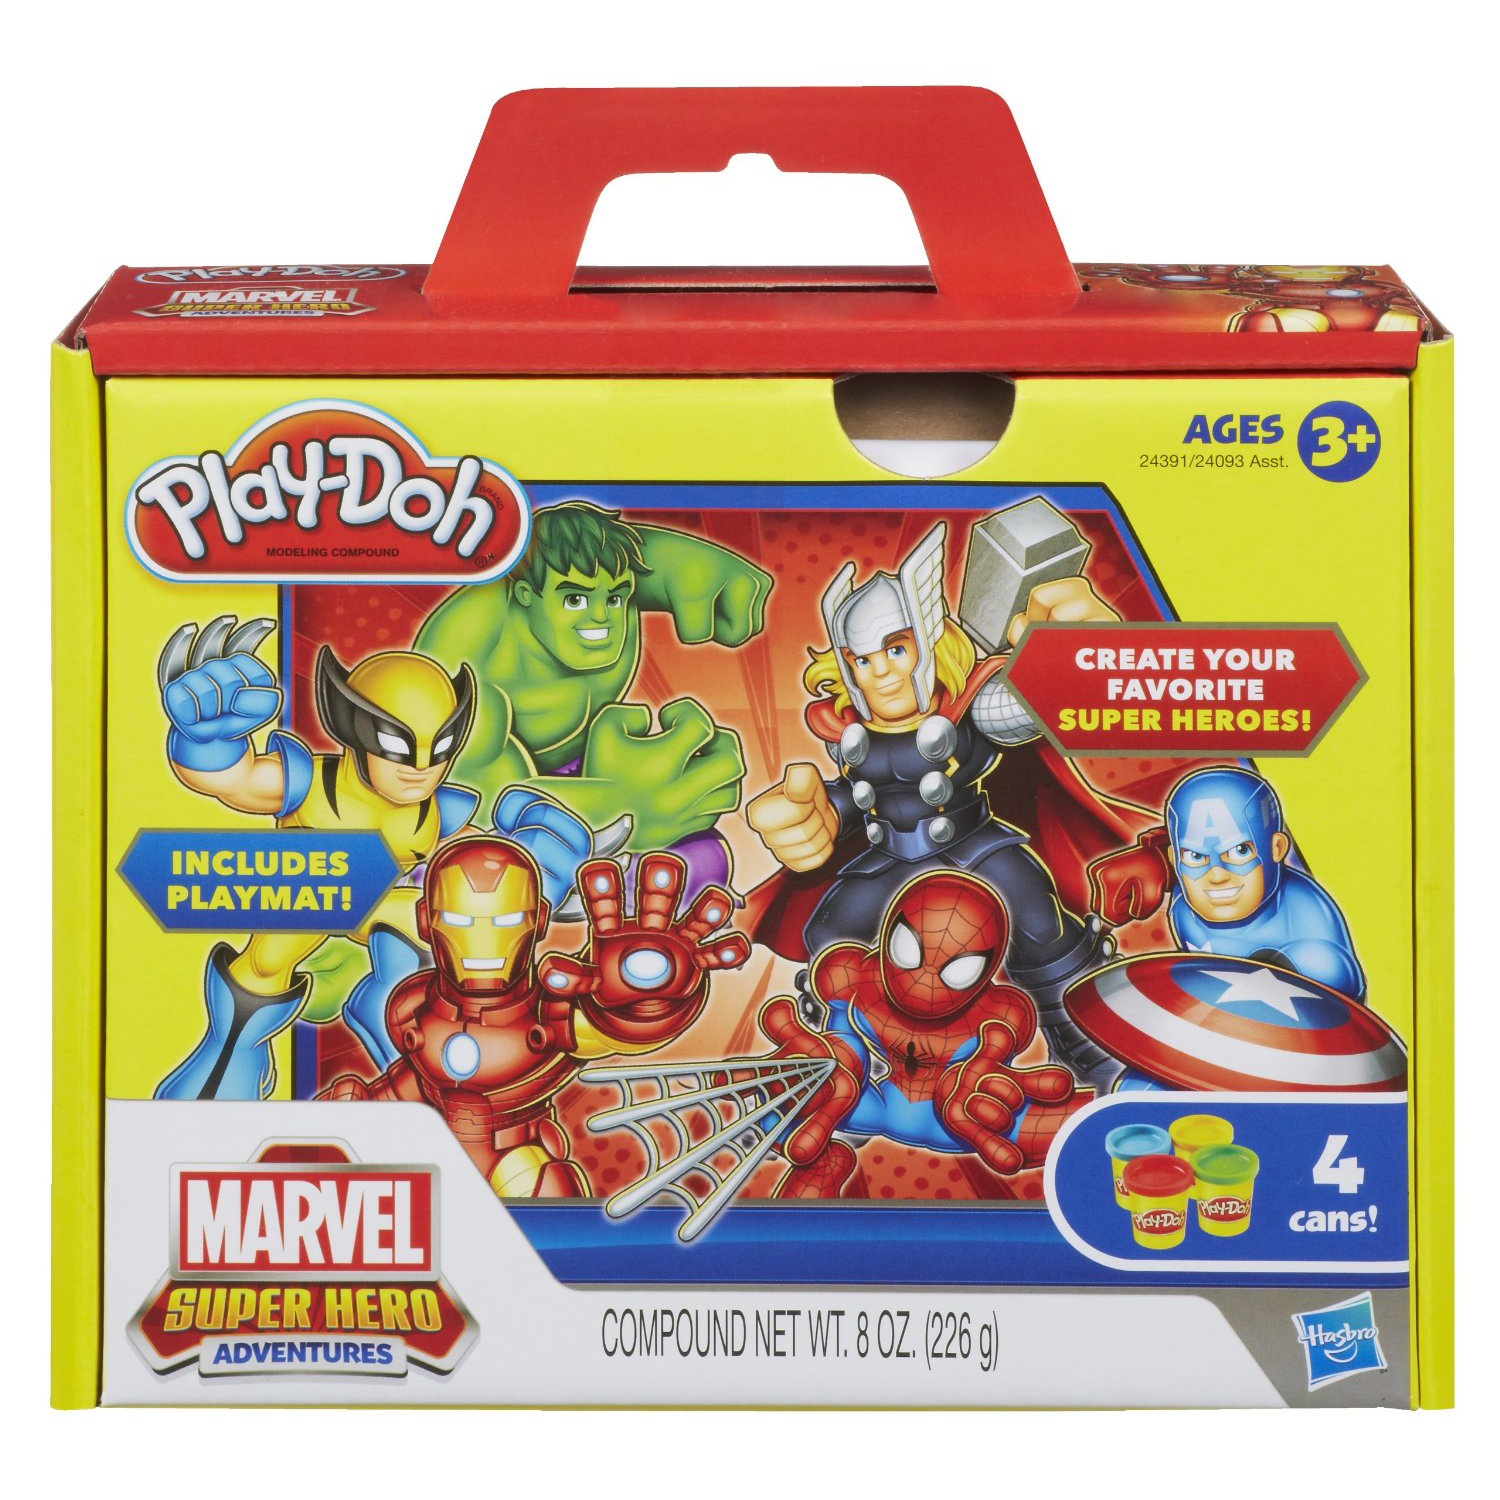 Super Hero Toys For Boys : Marvel toys play doh™ super hero squad adventure set at